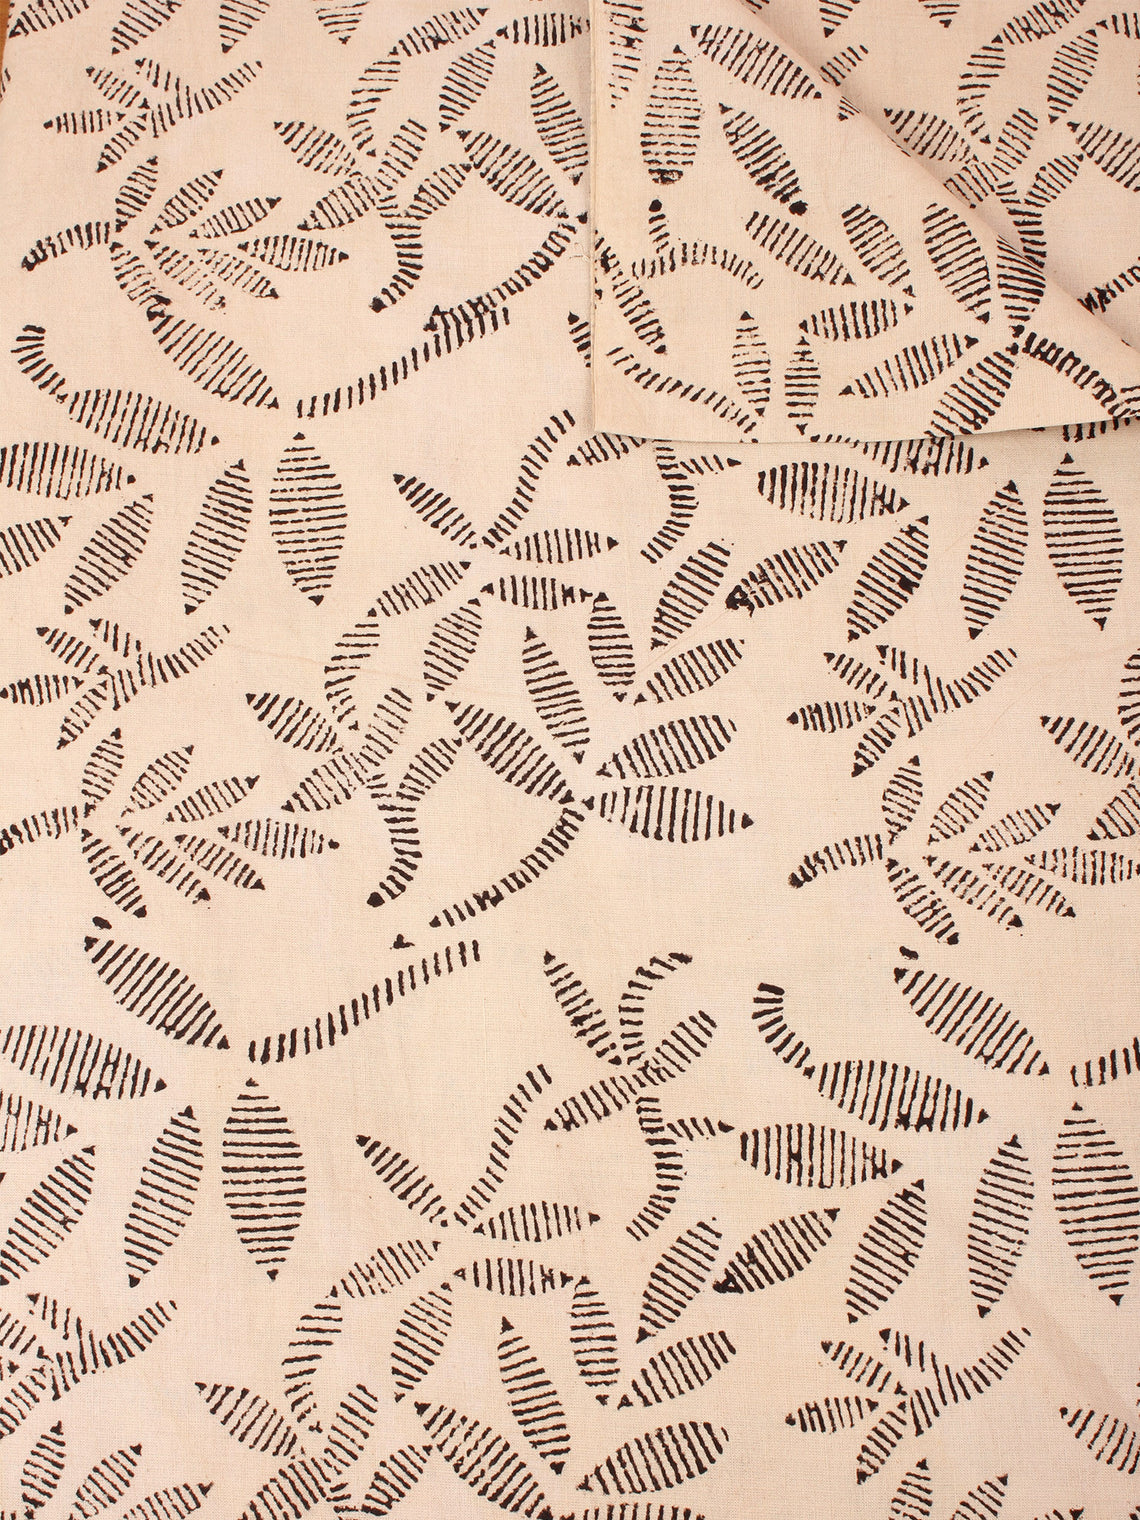 Ivory Black Natural Dyed Hand Block Printed Cotton Fabric Per Meter - F0916241